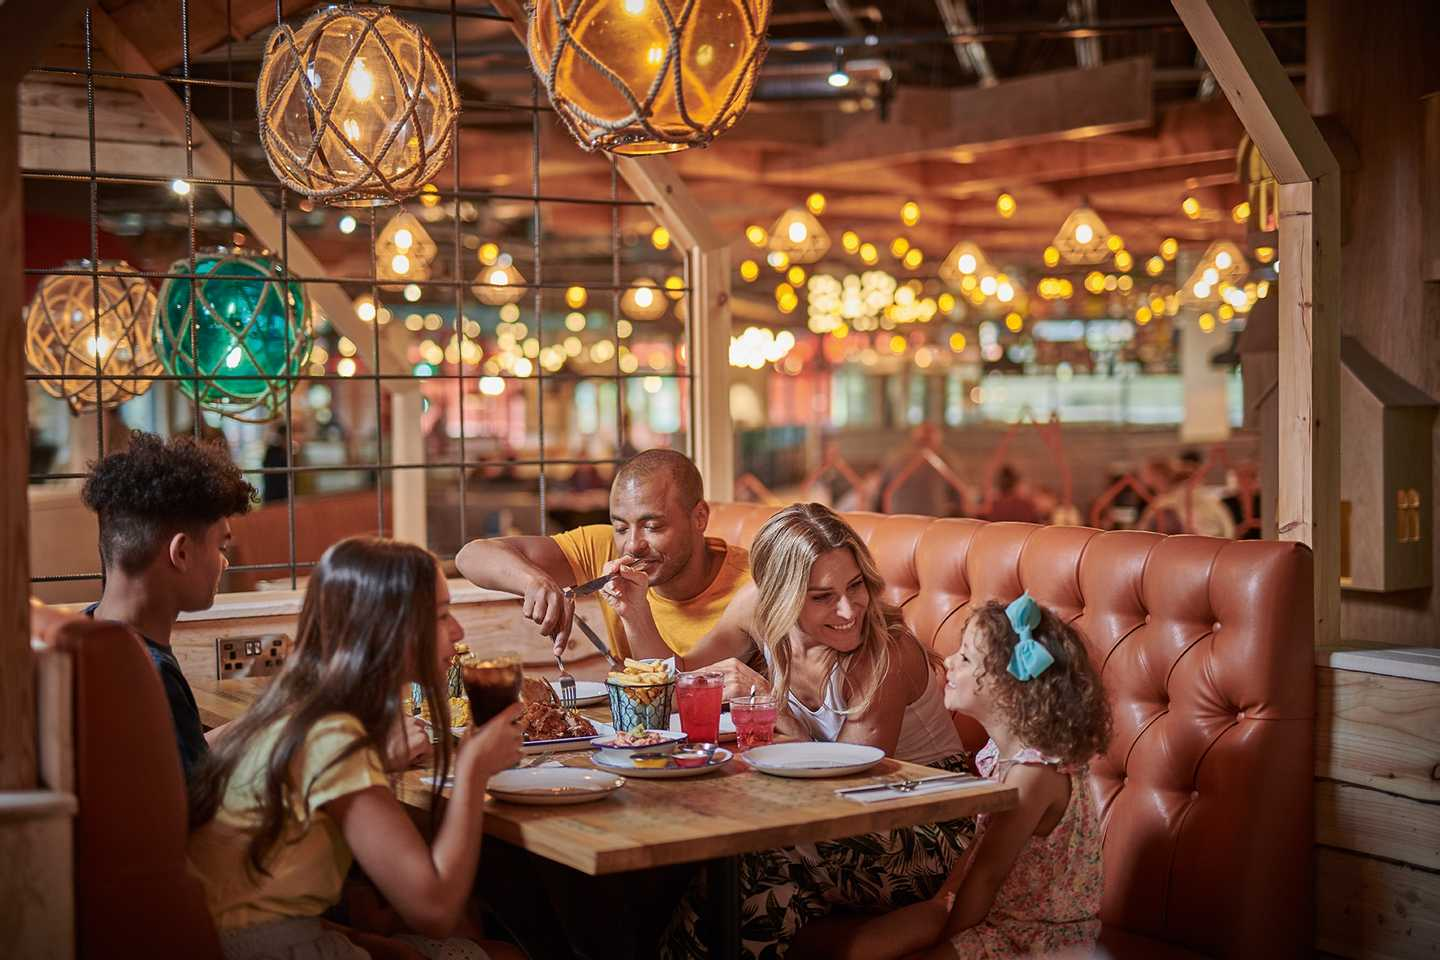 Enjoy a meal in one of our treehouses in the Coast House bar and grill